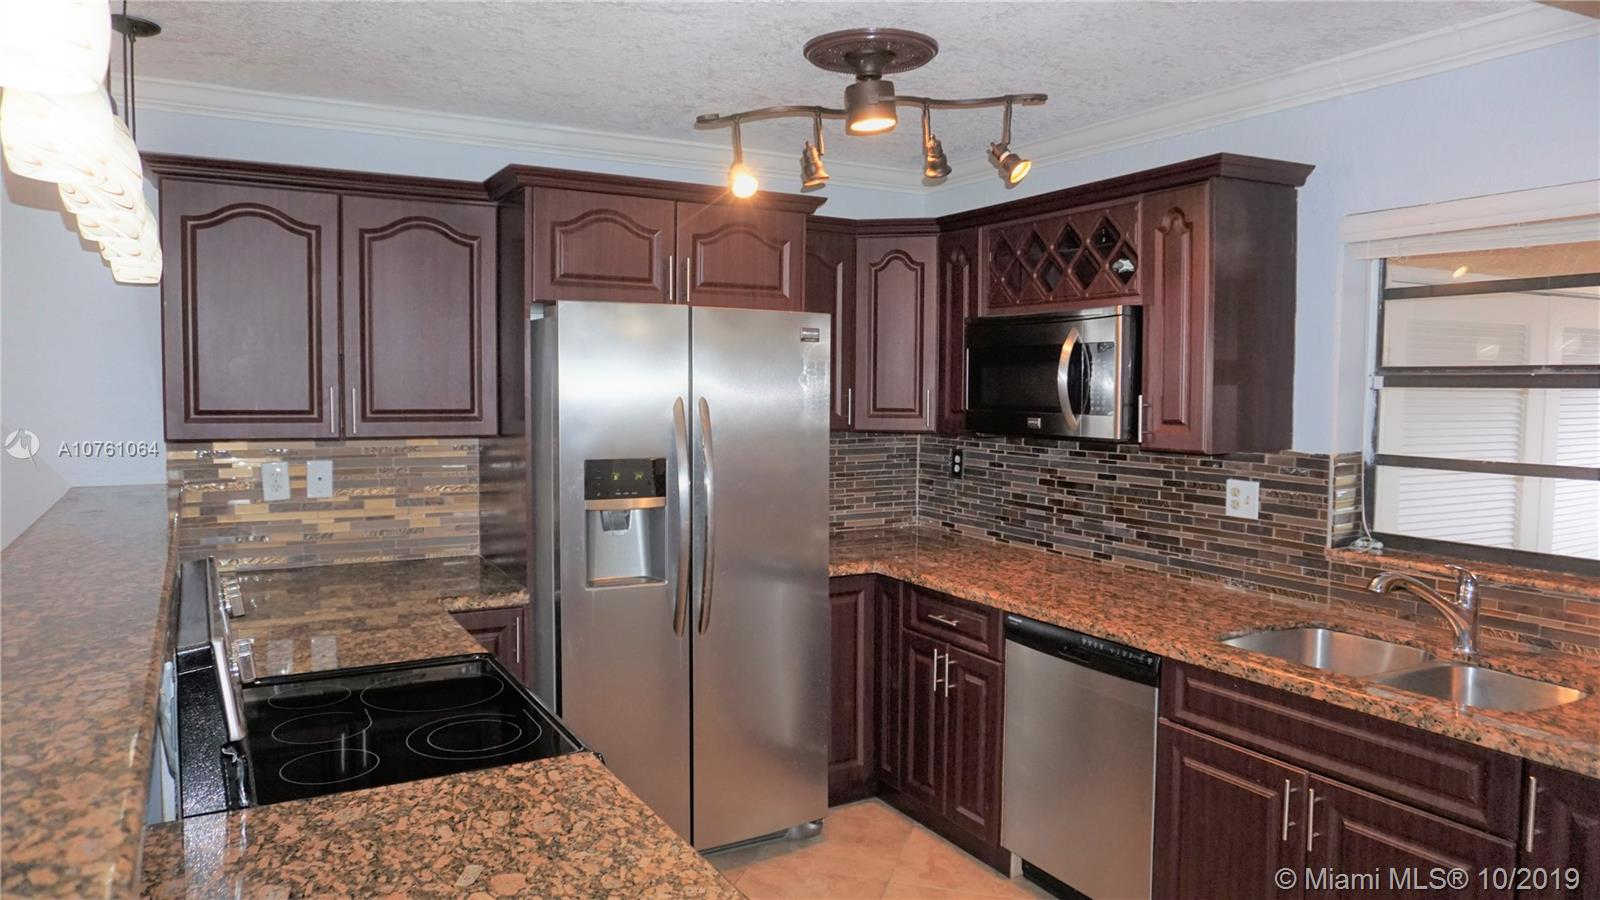 8632 NW 34th Pl #C105, Sunrise, FL 33351 is now new to the market!